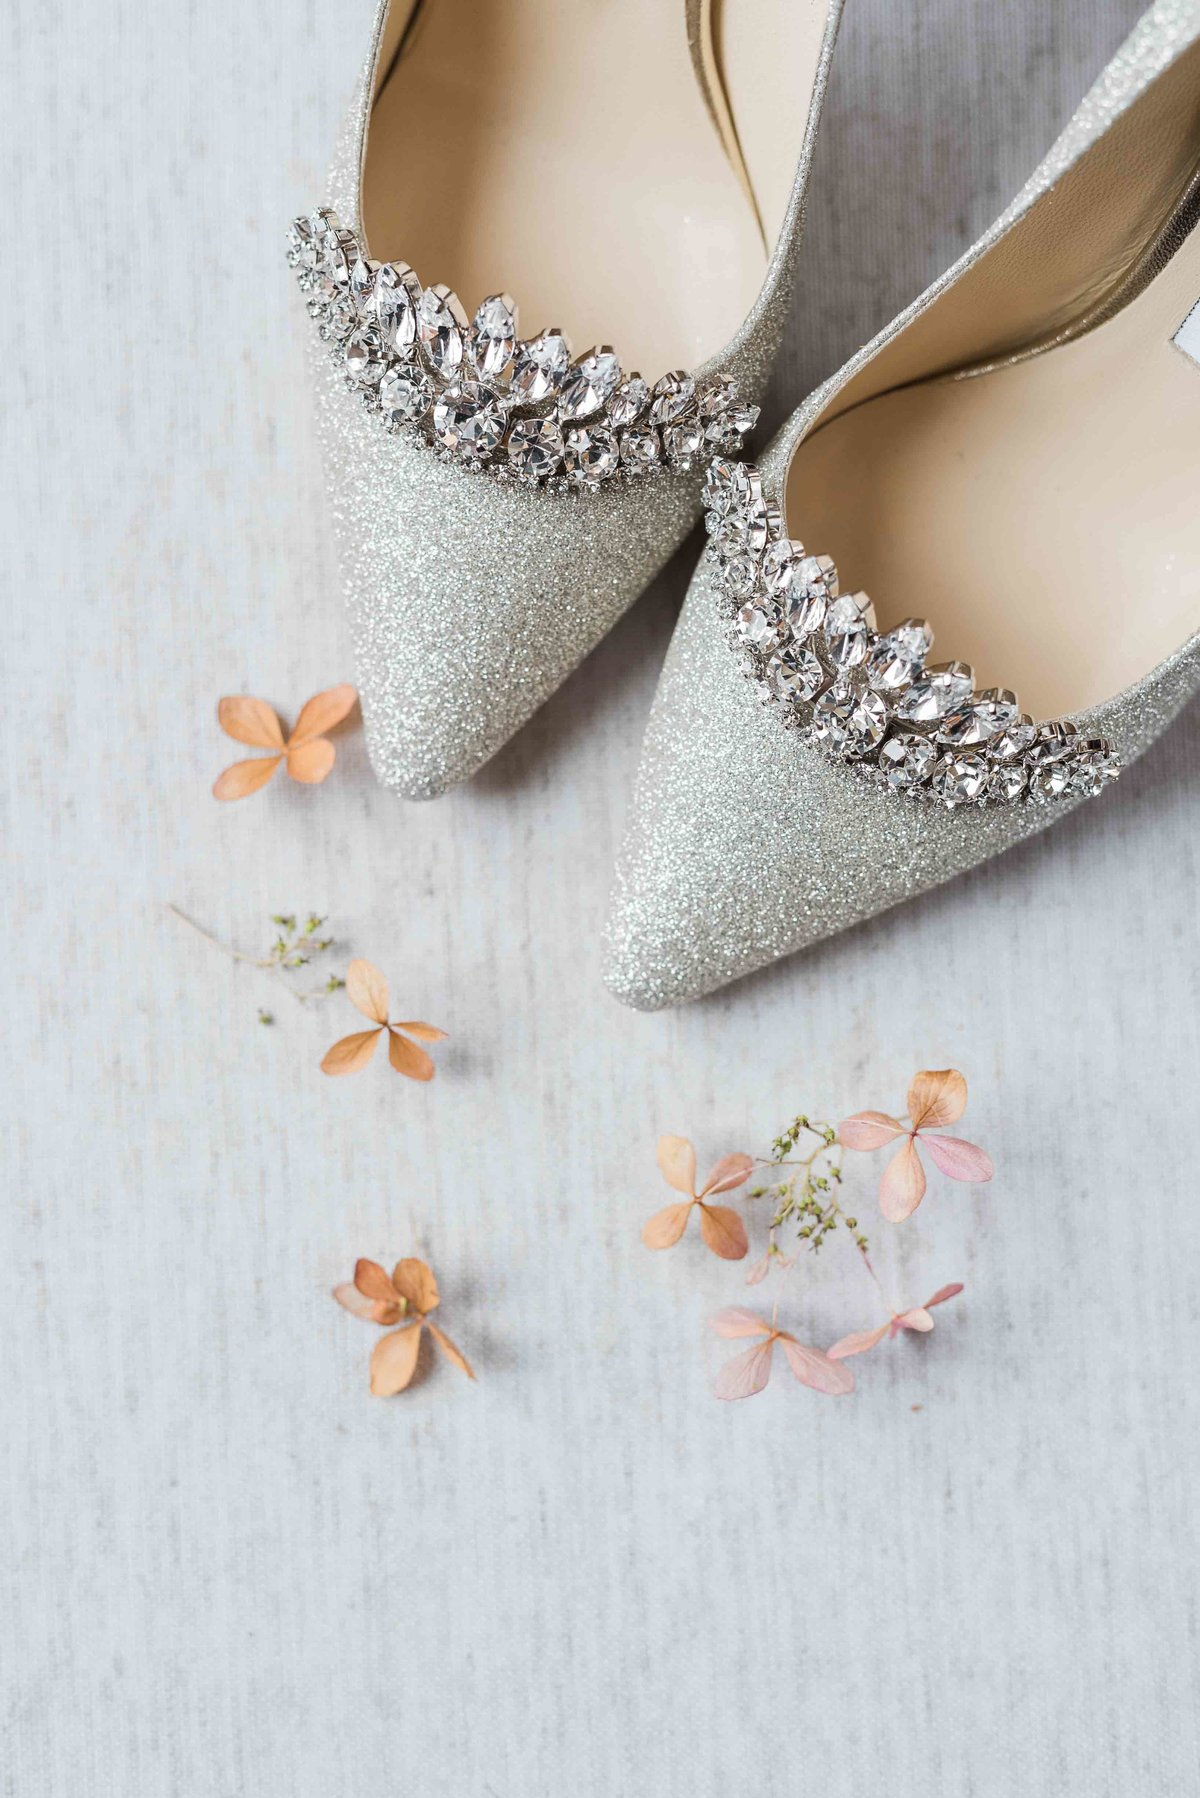 laure_lalliard_design_ClaireMorrisPhoto_limmy_choo_bridal_shoes